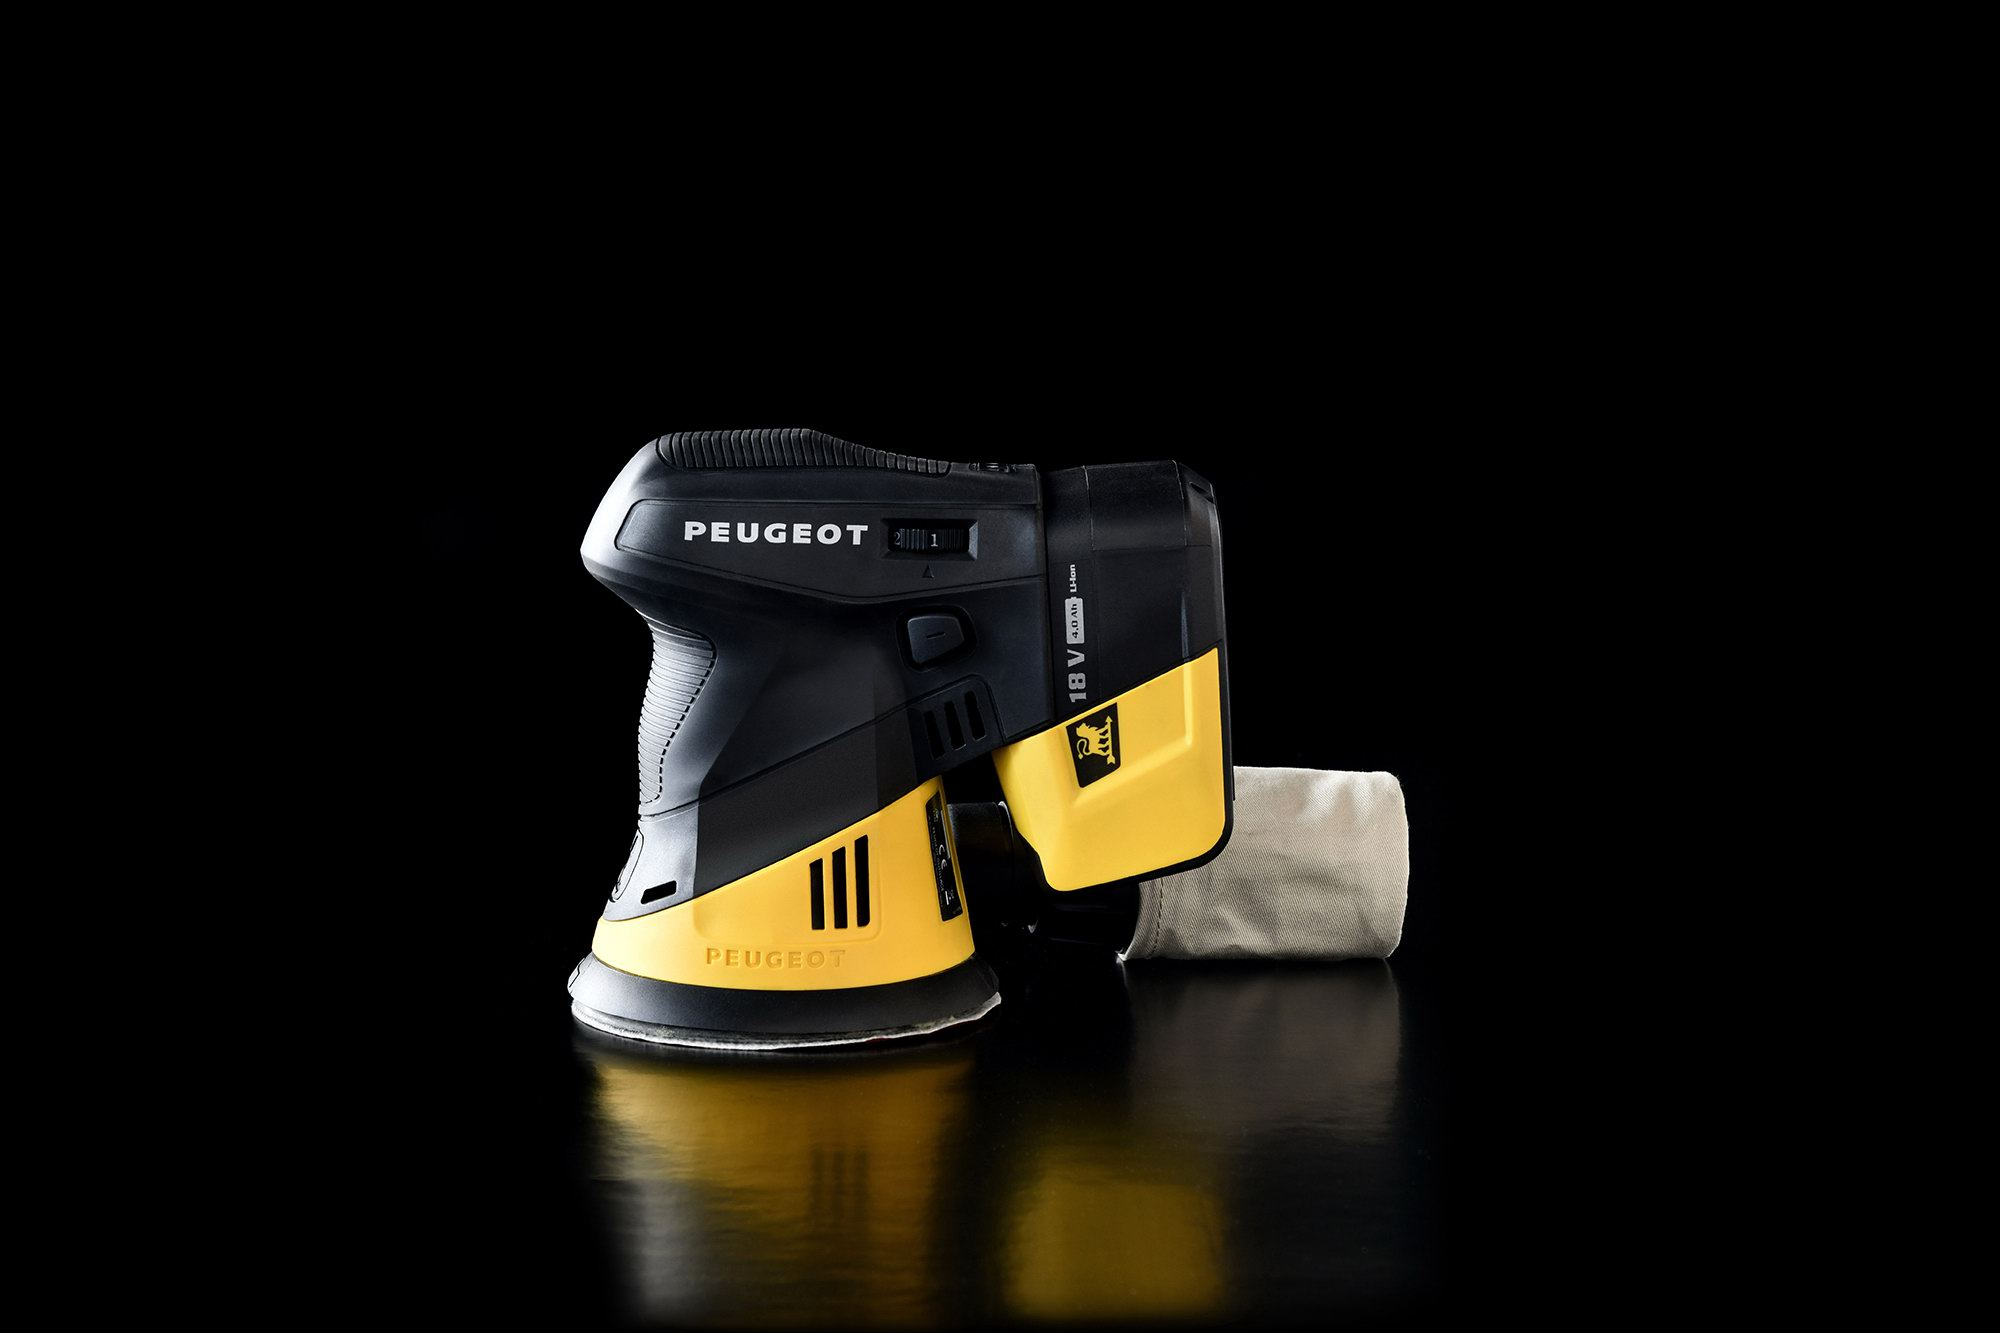 Product Design - PHOTOS - PEUGEOT POWERTOOLS